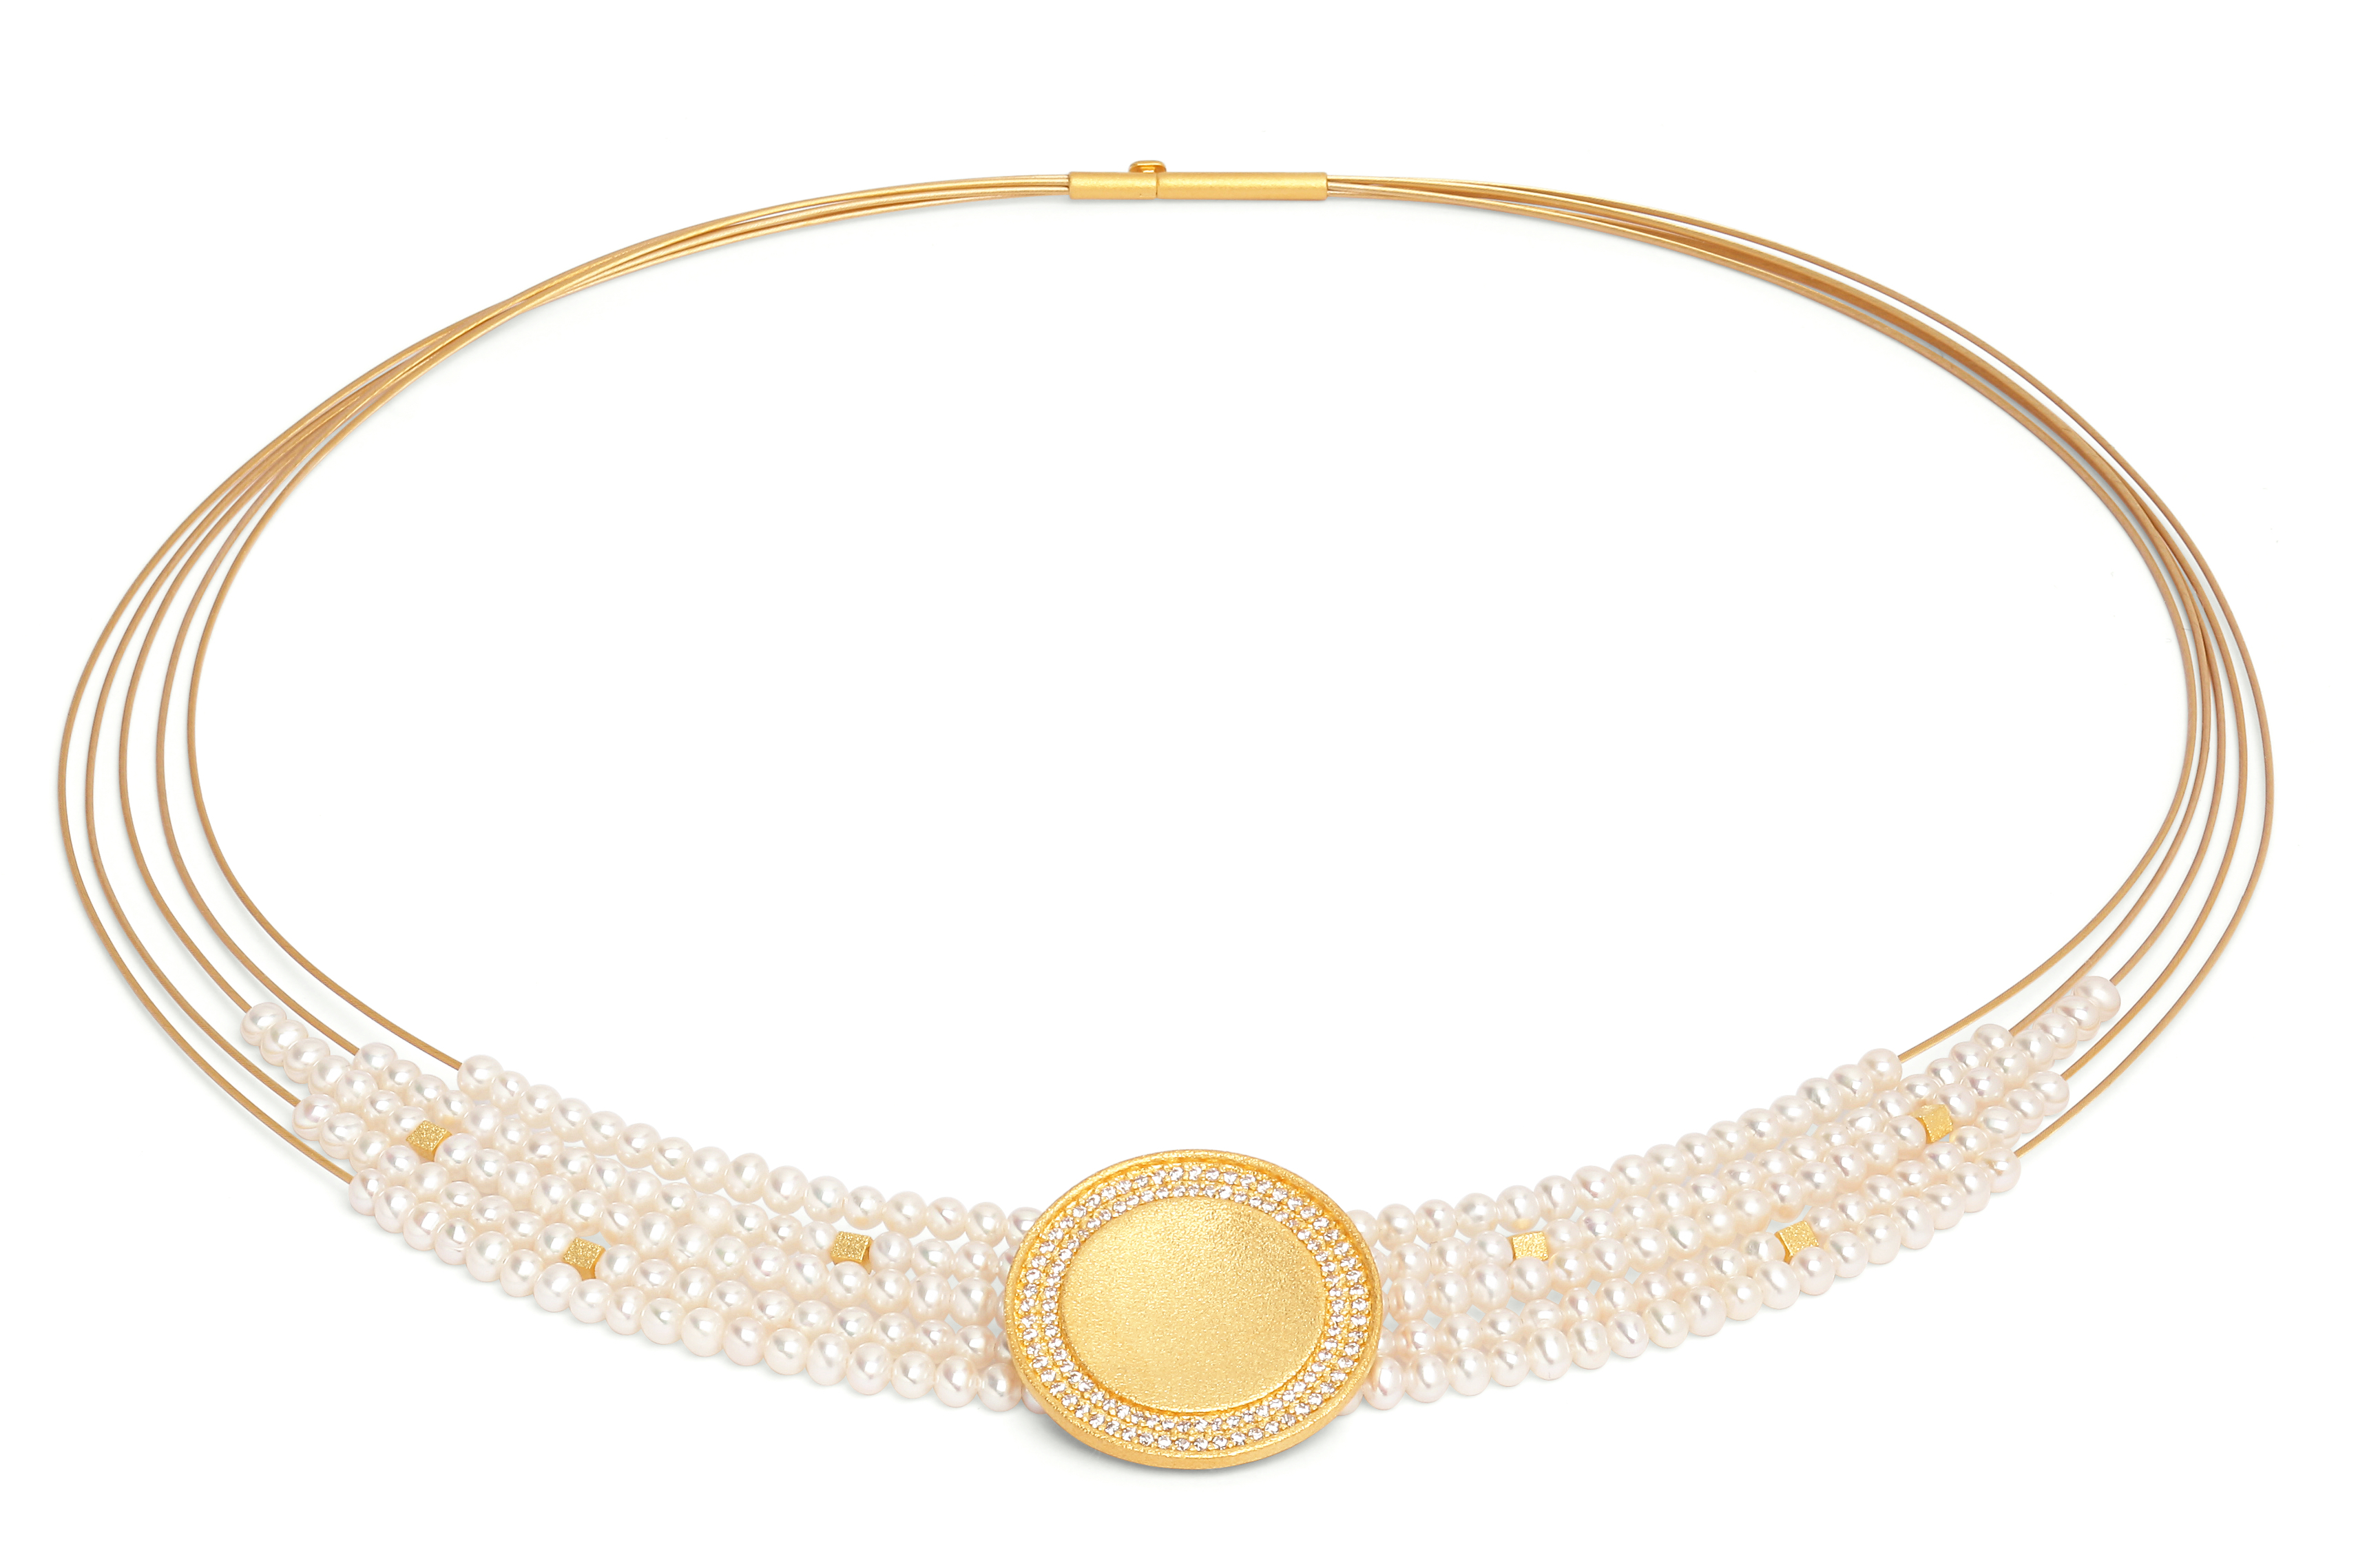 Bernd Wolf Victoria freshwater pearl collier | JCK On Your Market